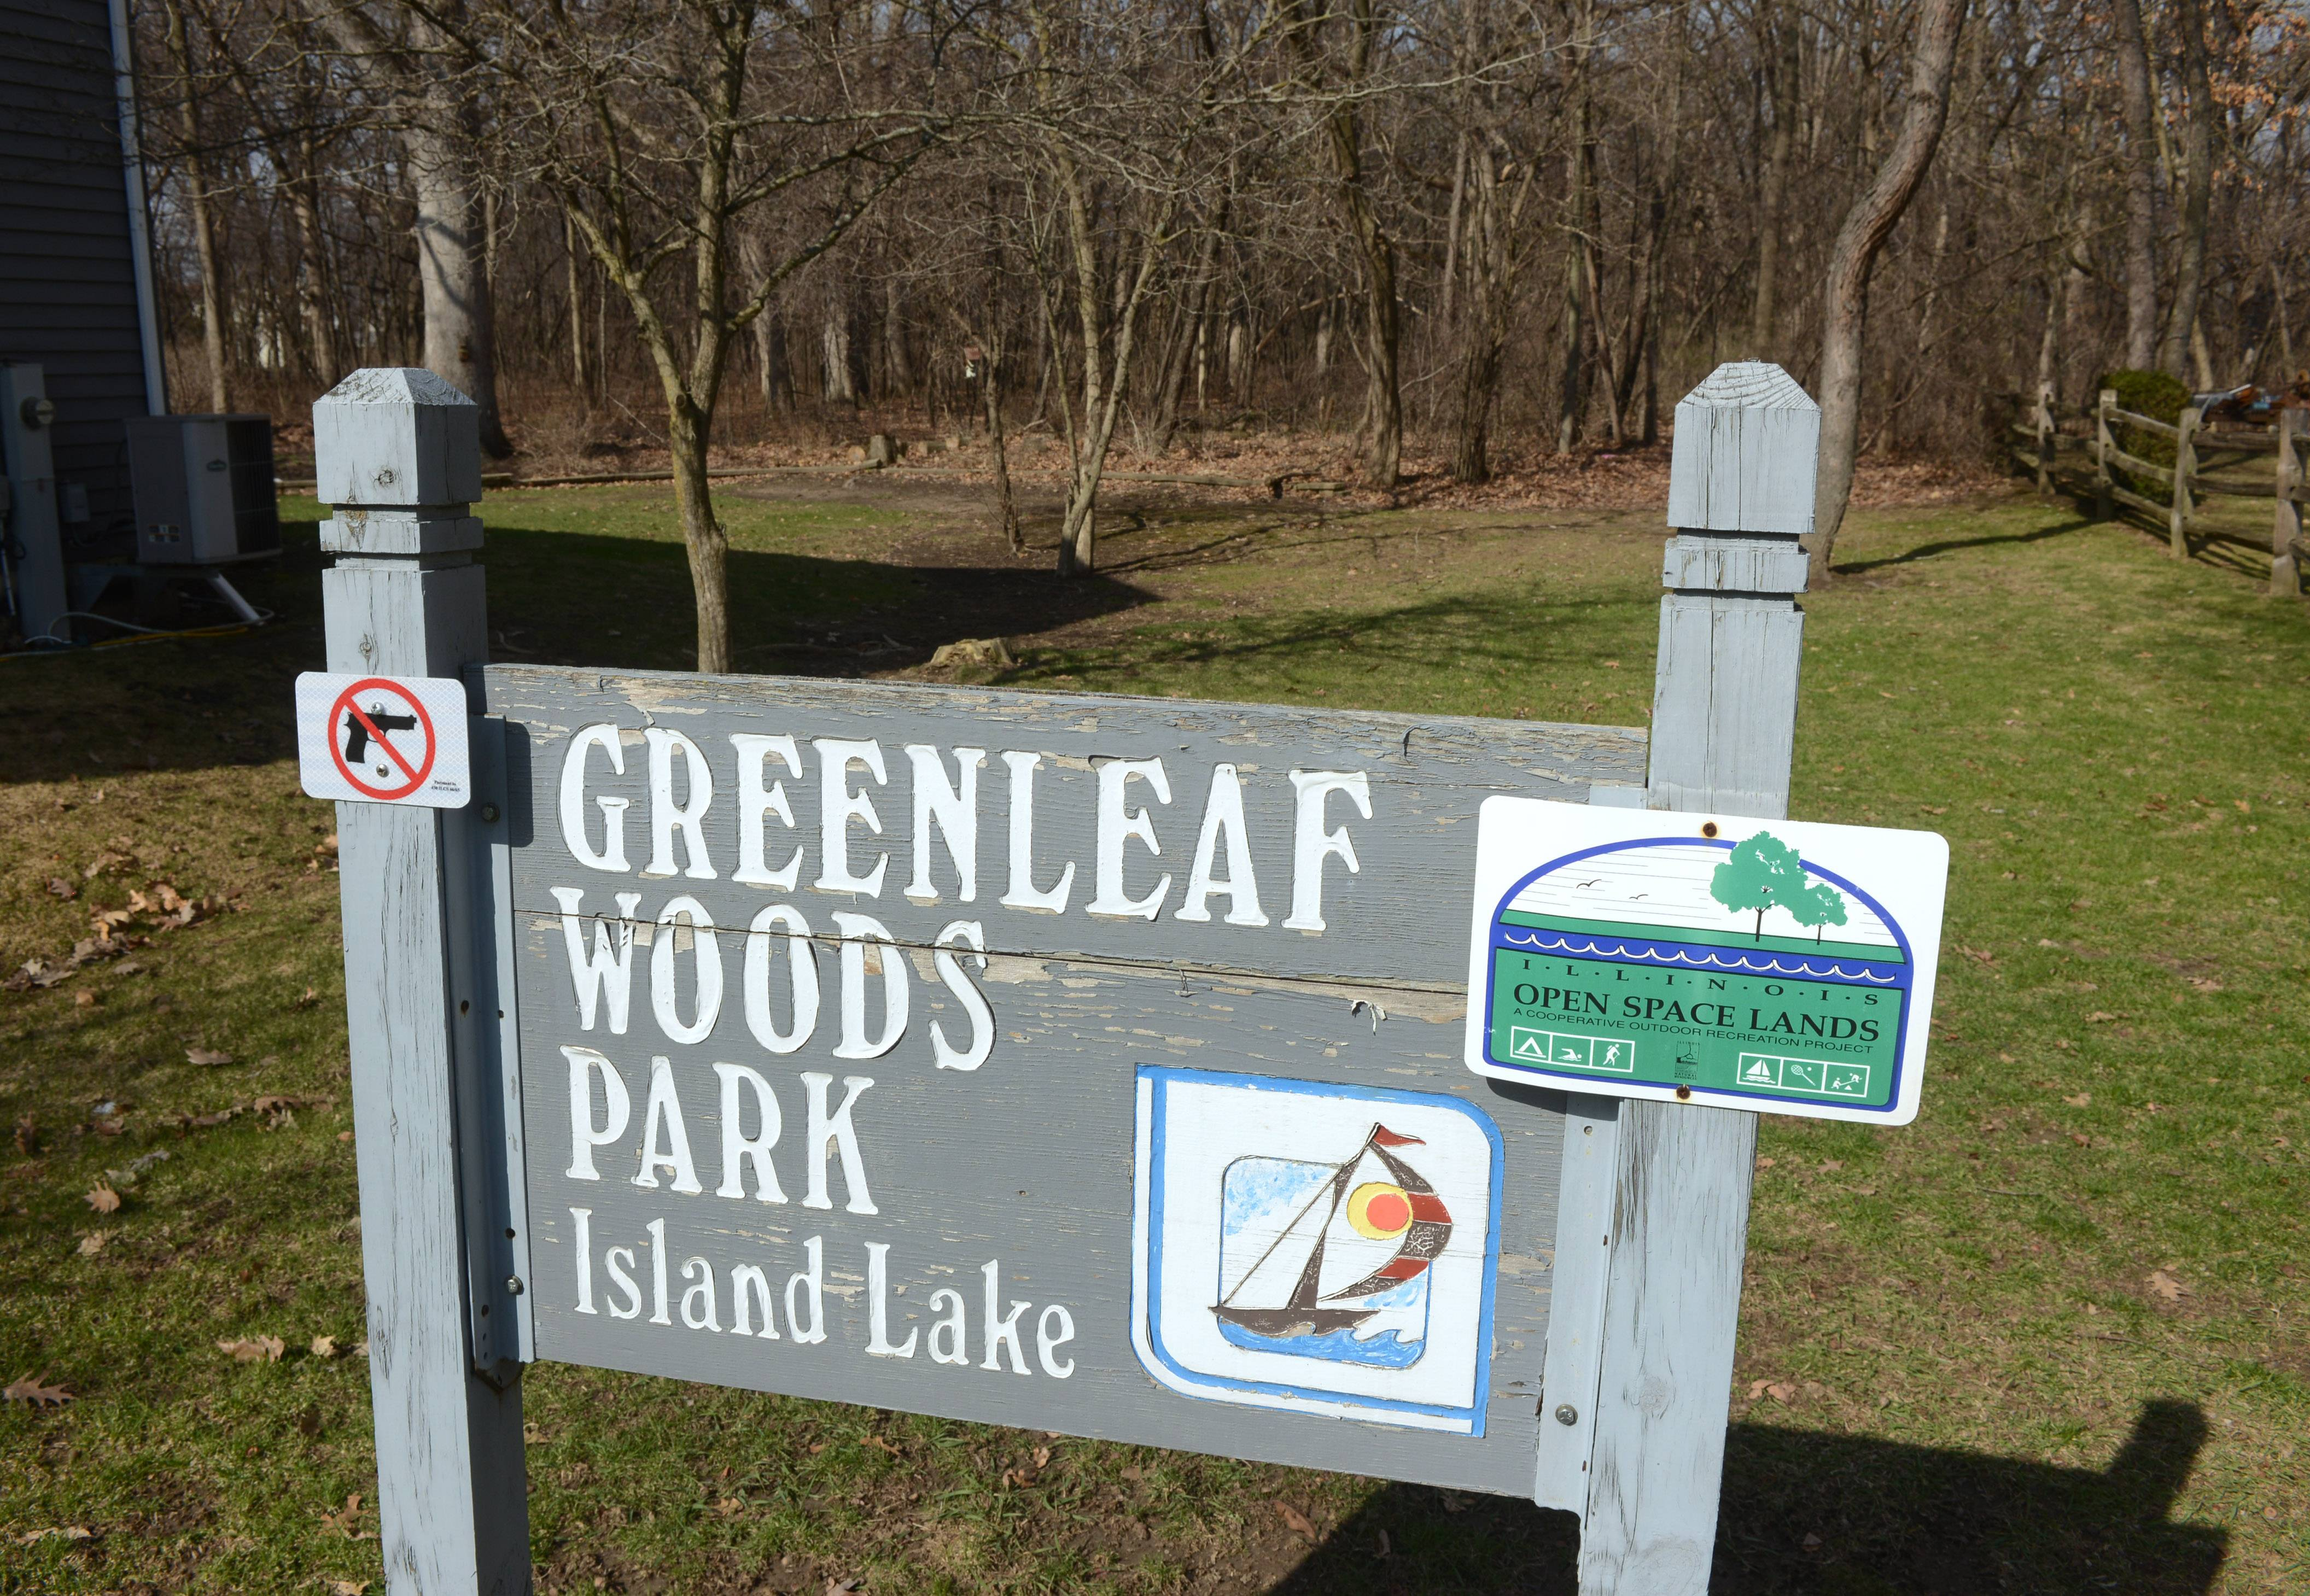 Island Lake officials mum about state grant controversy after meeting